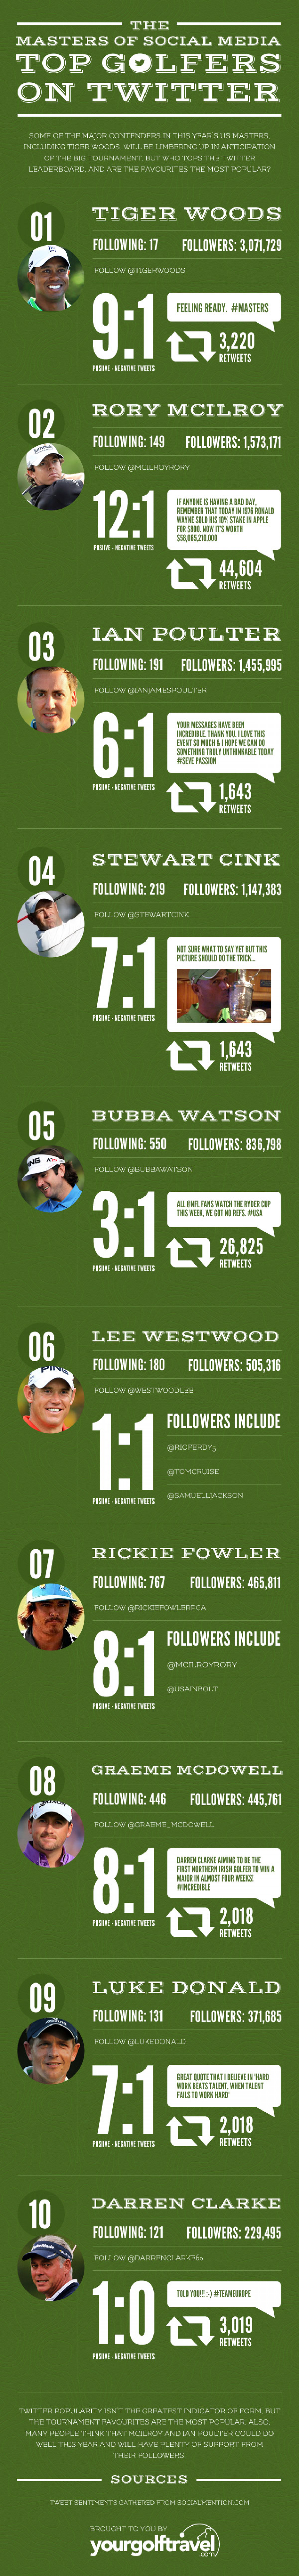 The Masters of Social Media - Top Golfers on Twitter Infographic